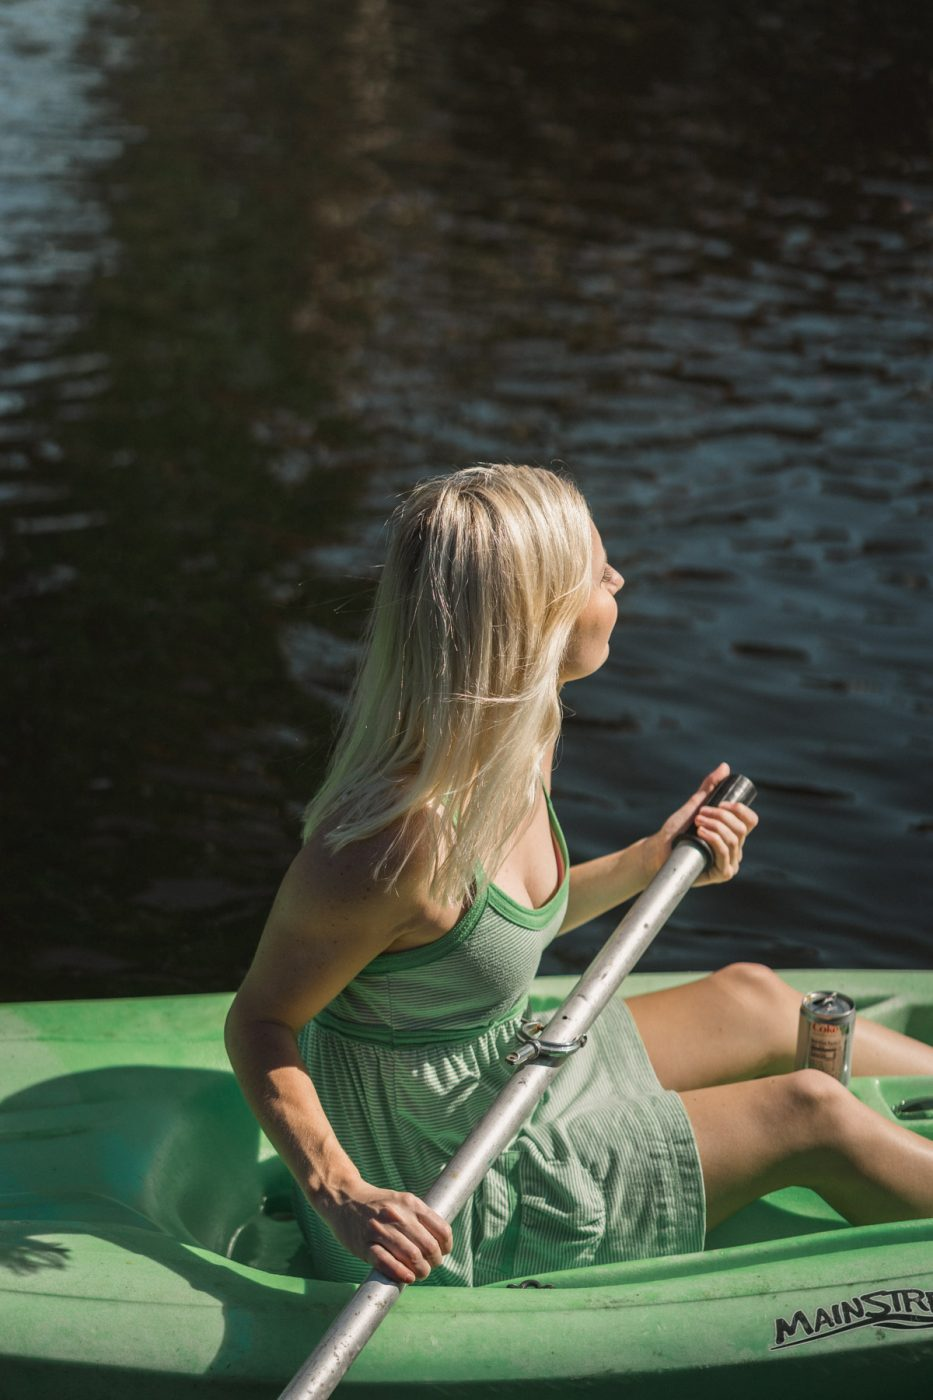 Jenny Kayaking with Lime Diet Coke